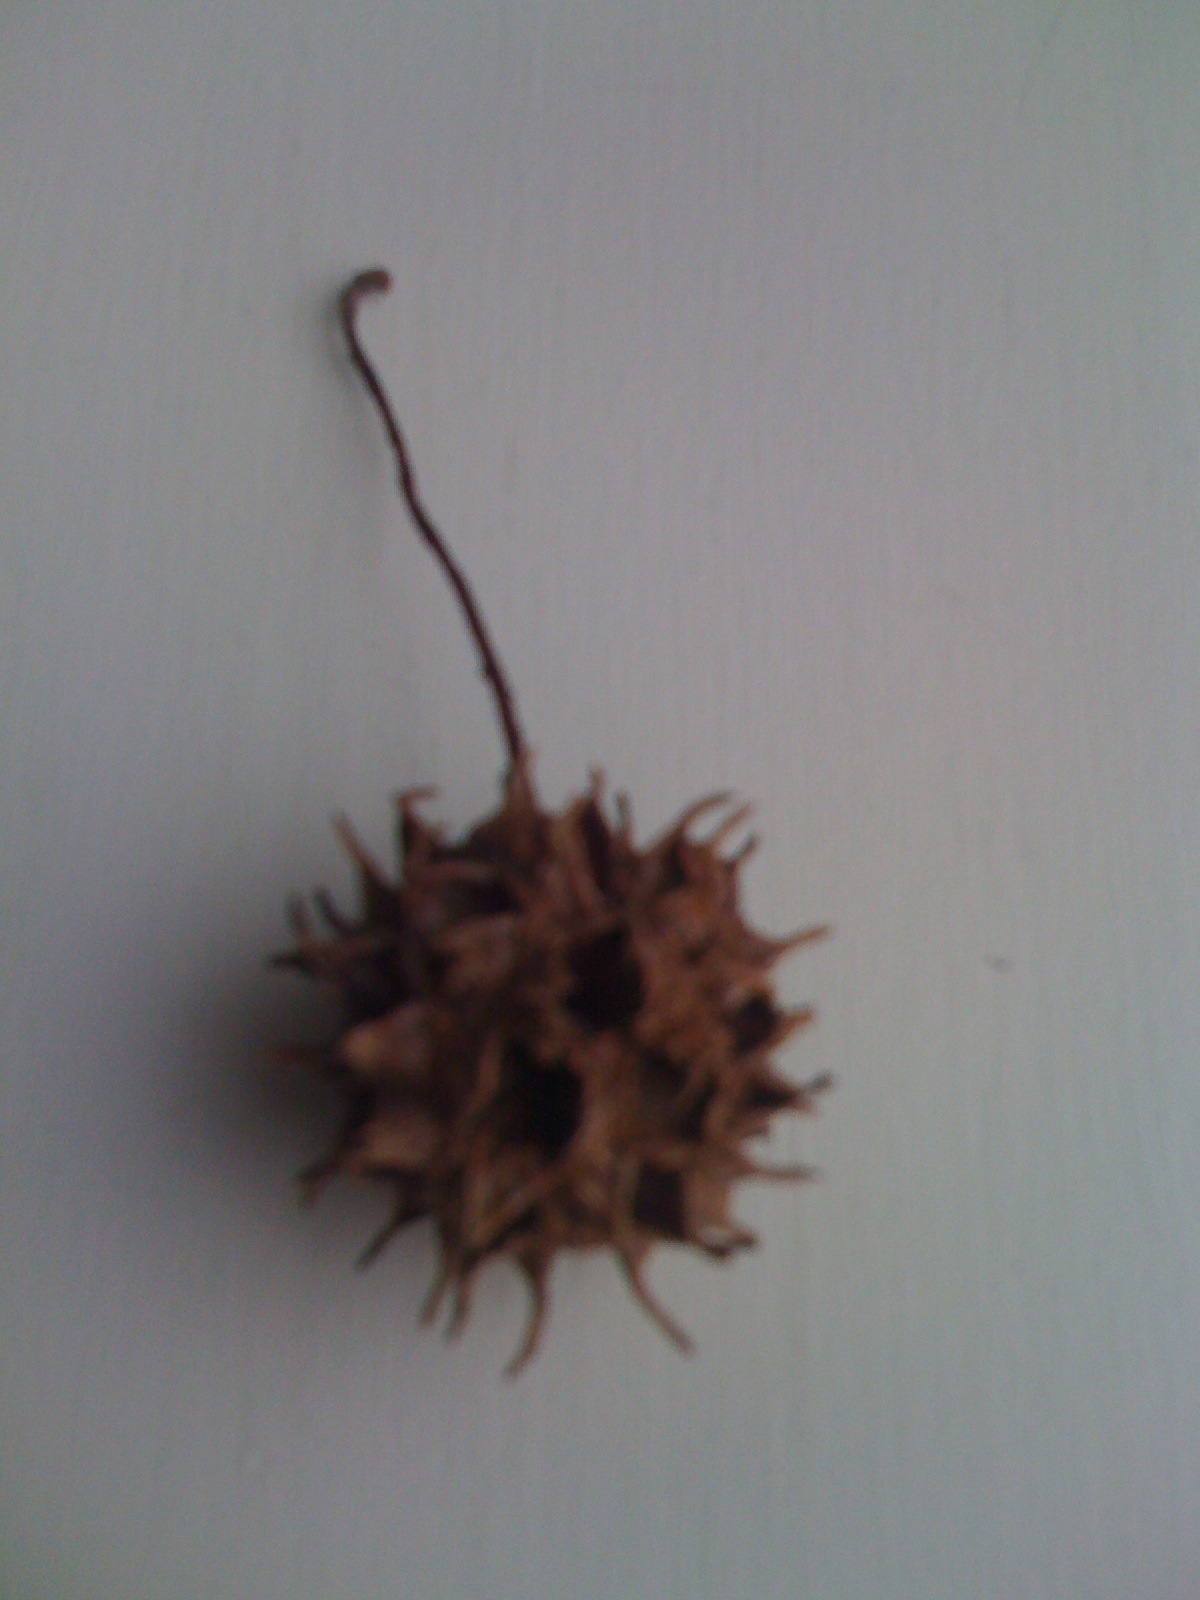 Tree Seeds Identification http://outwalkingthedog.wordpress.com/2010/02/13/seed-pods-and-eyeballs/